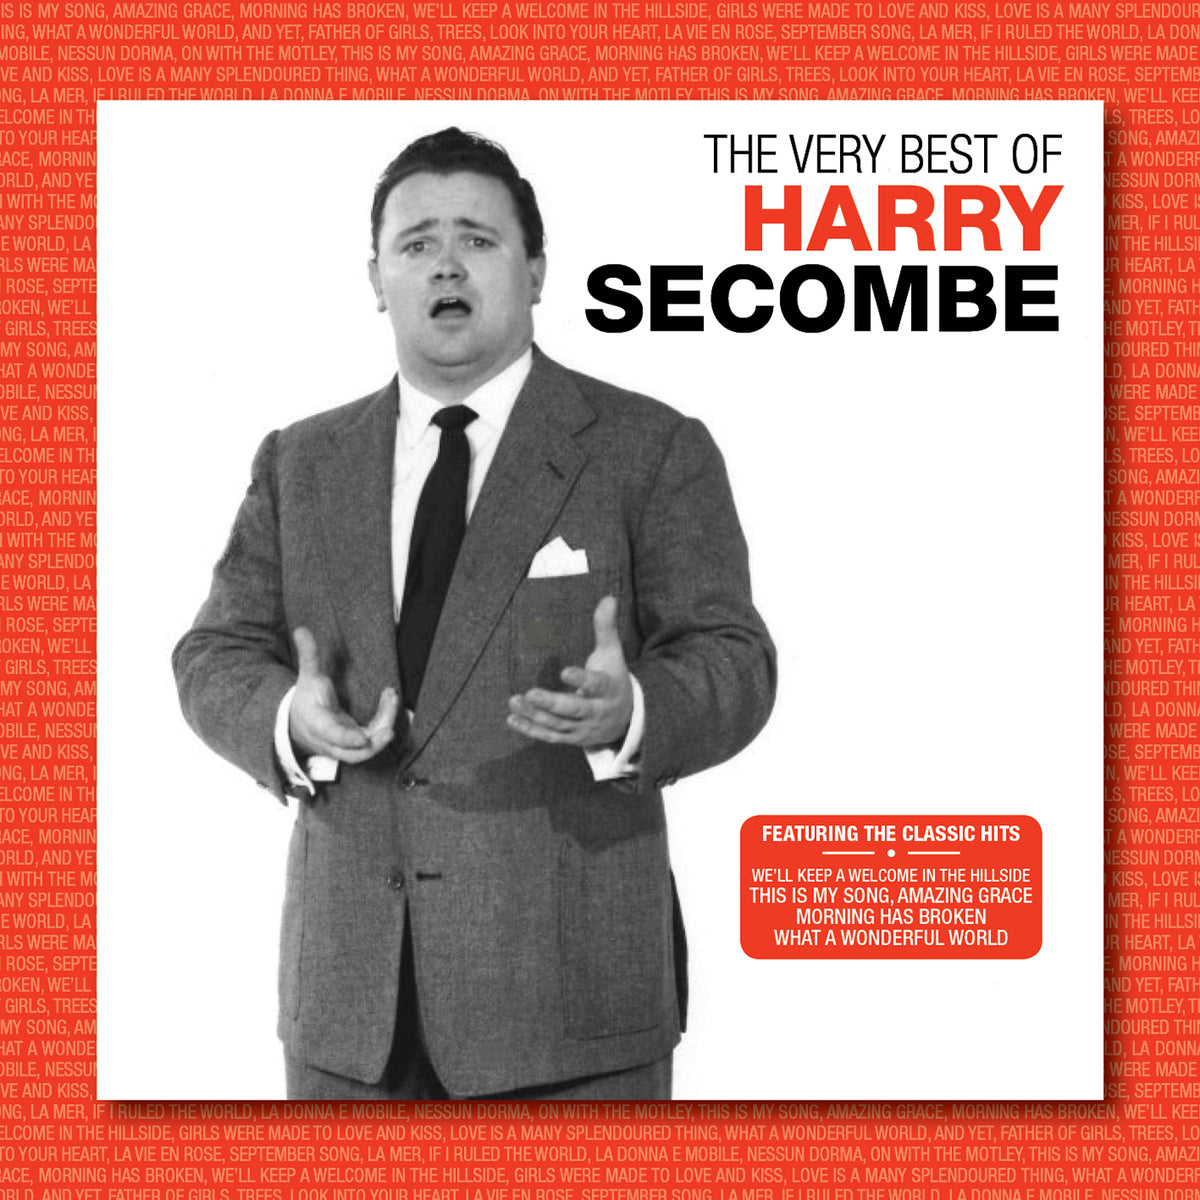 FANFARE159 - HARRY SECOMBE - THE VERY BE